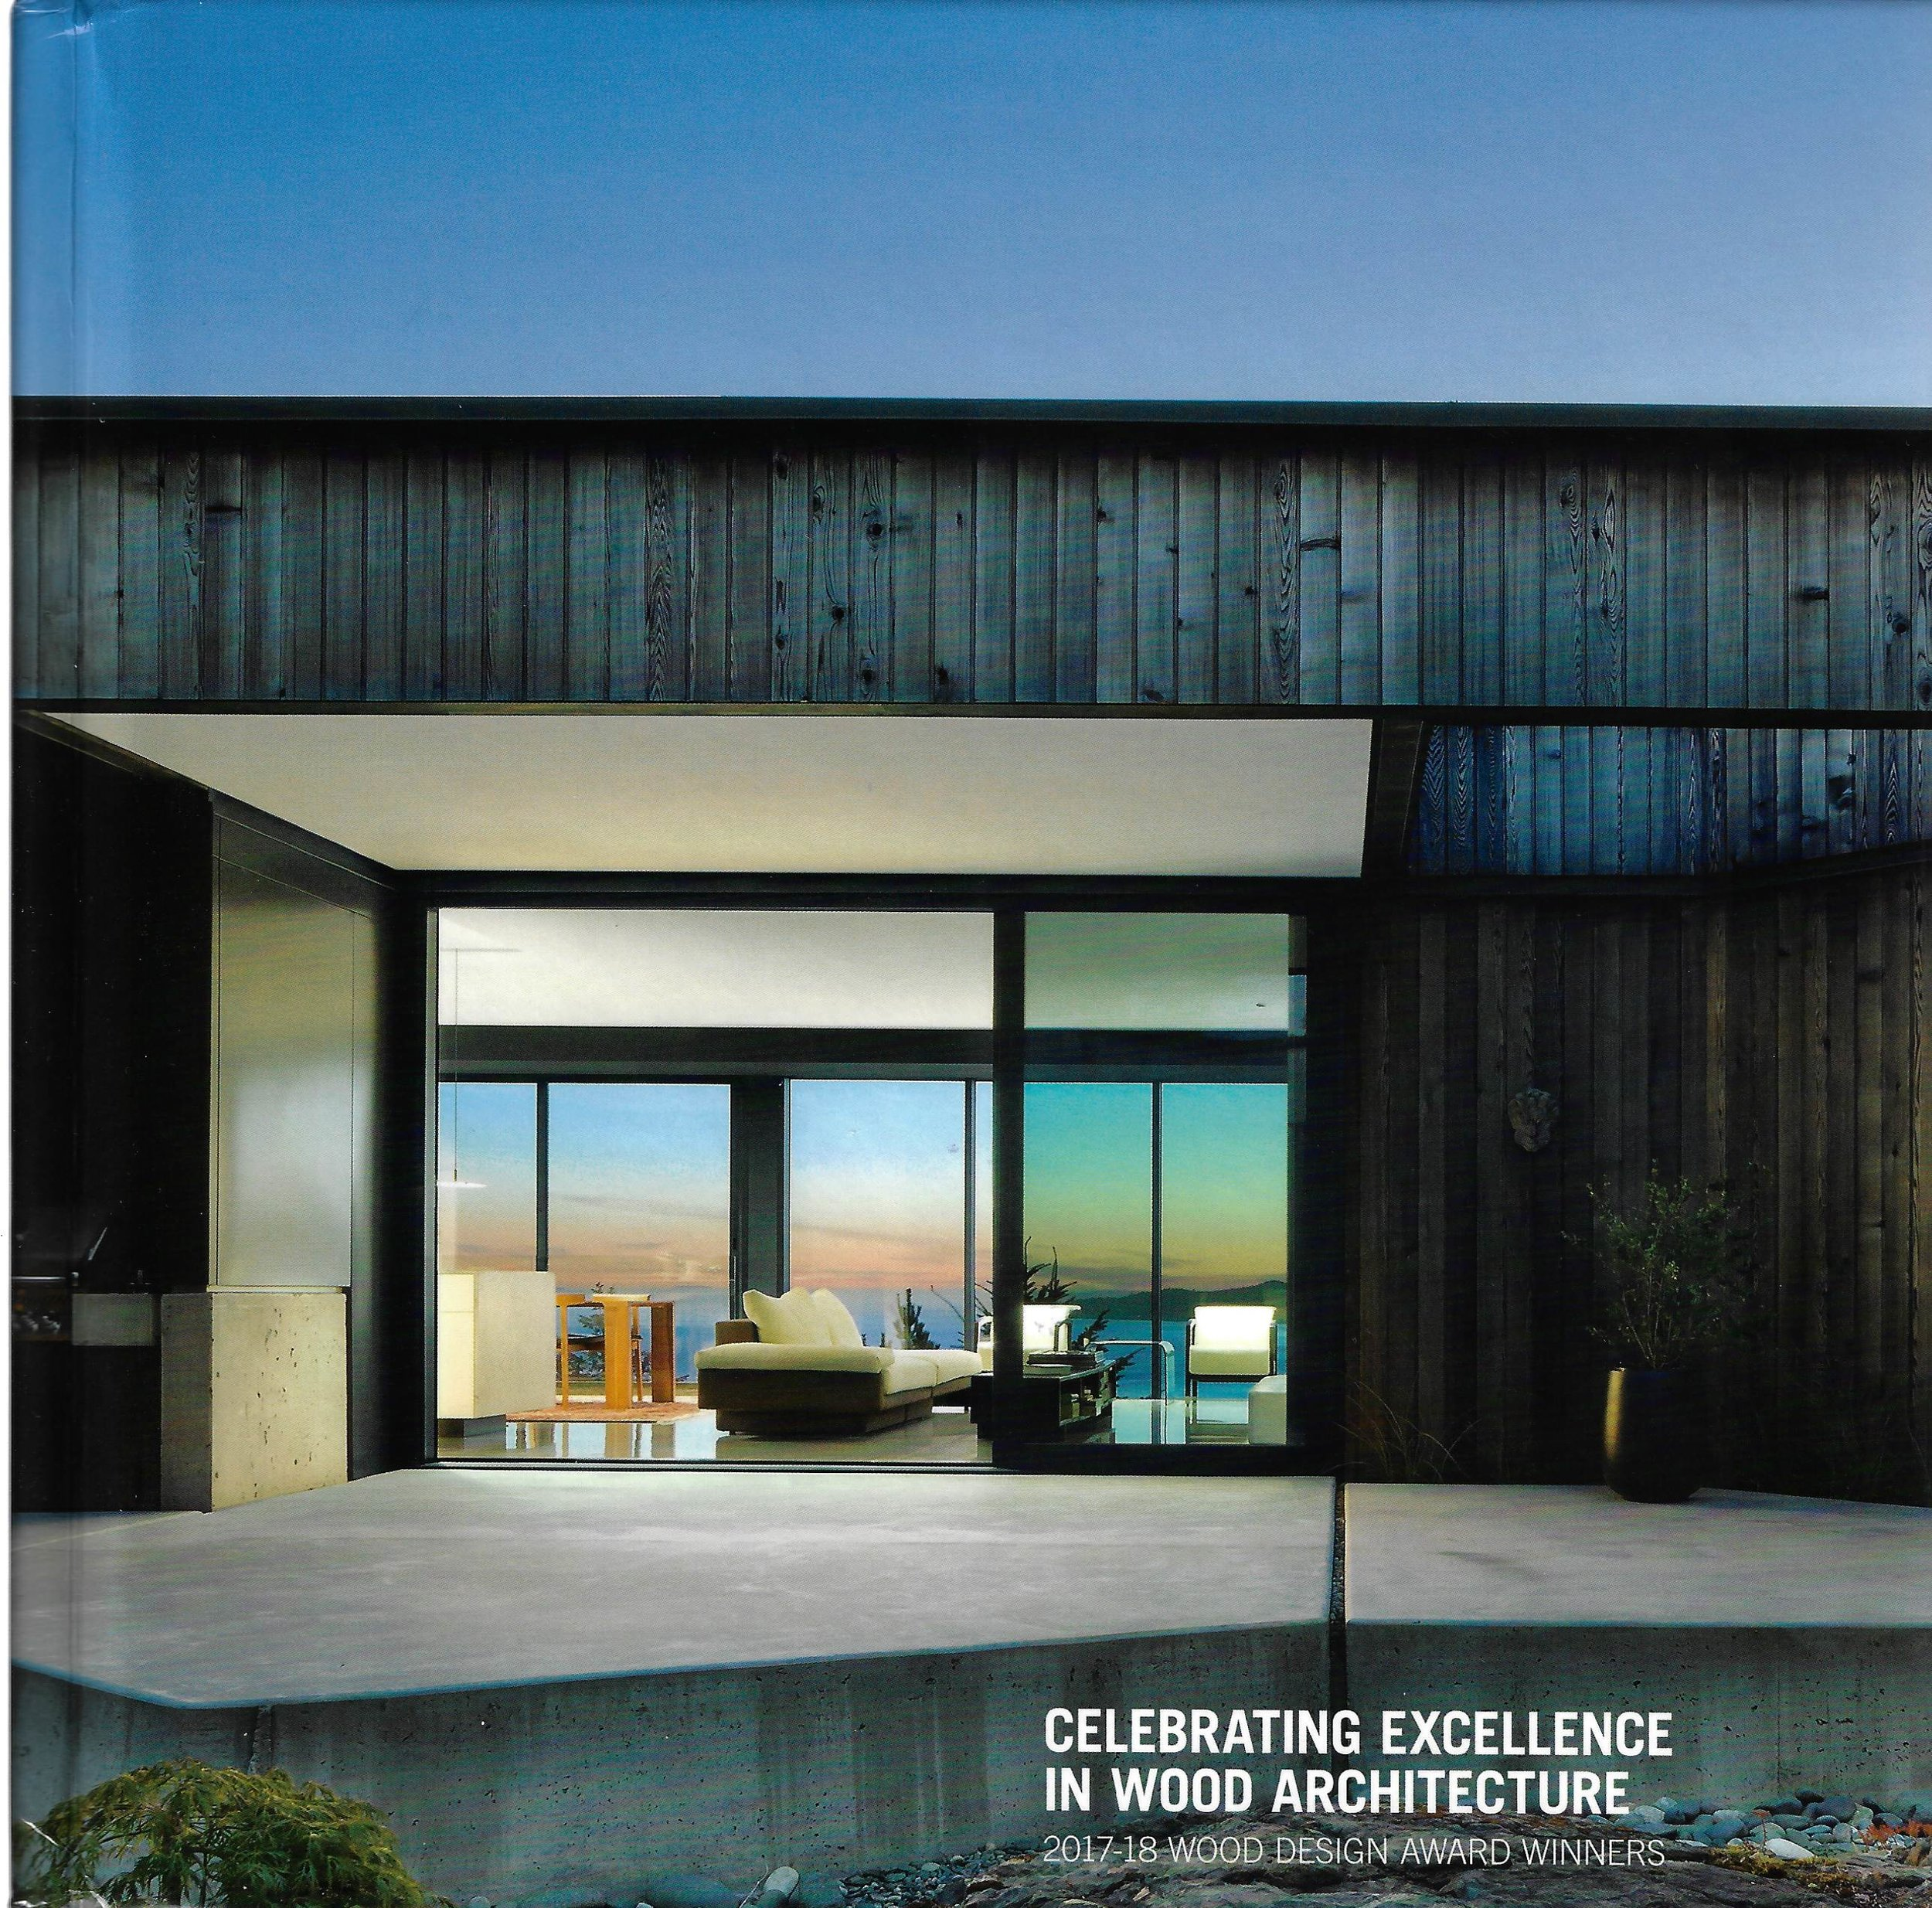 CELEBRATING EXCELLENCE IN WOOD ARCHITECTURE 2